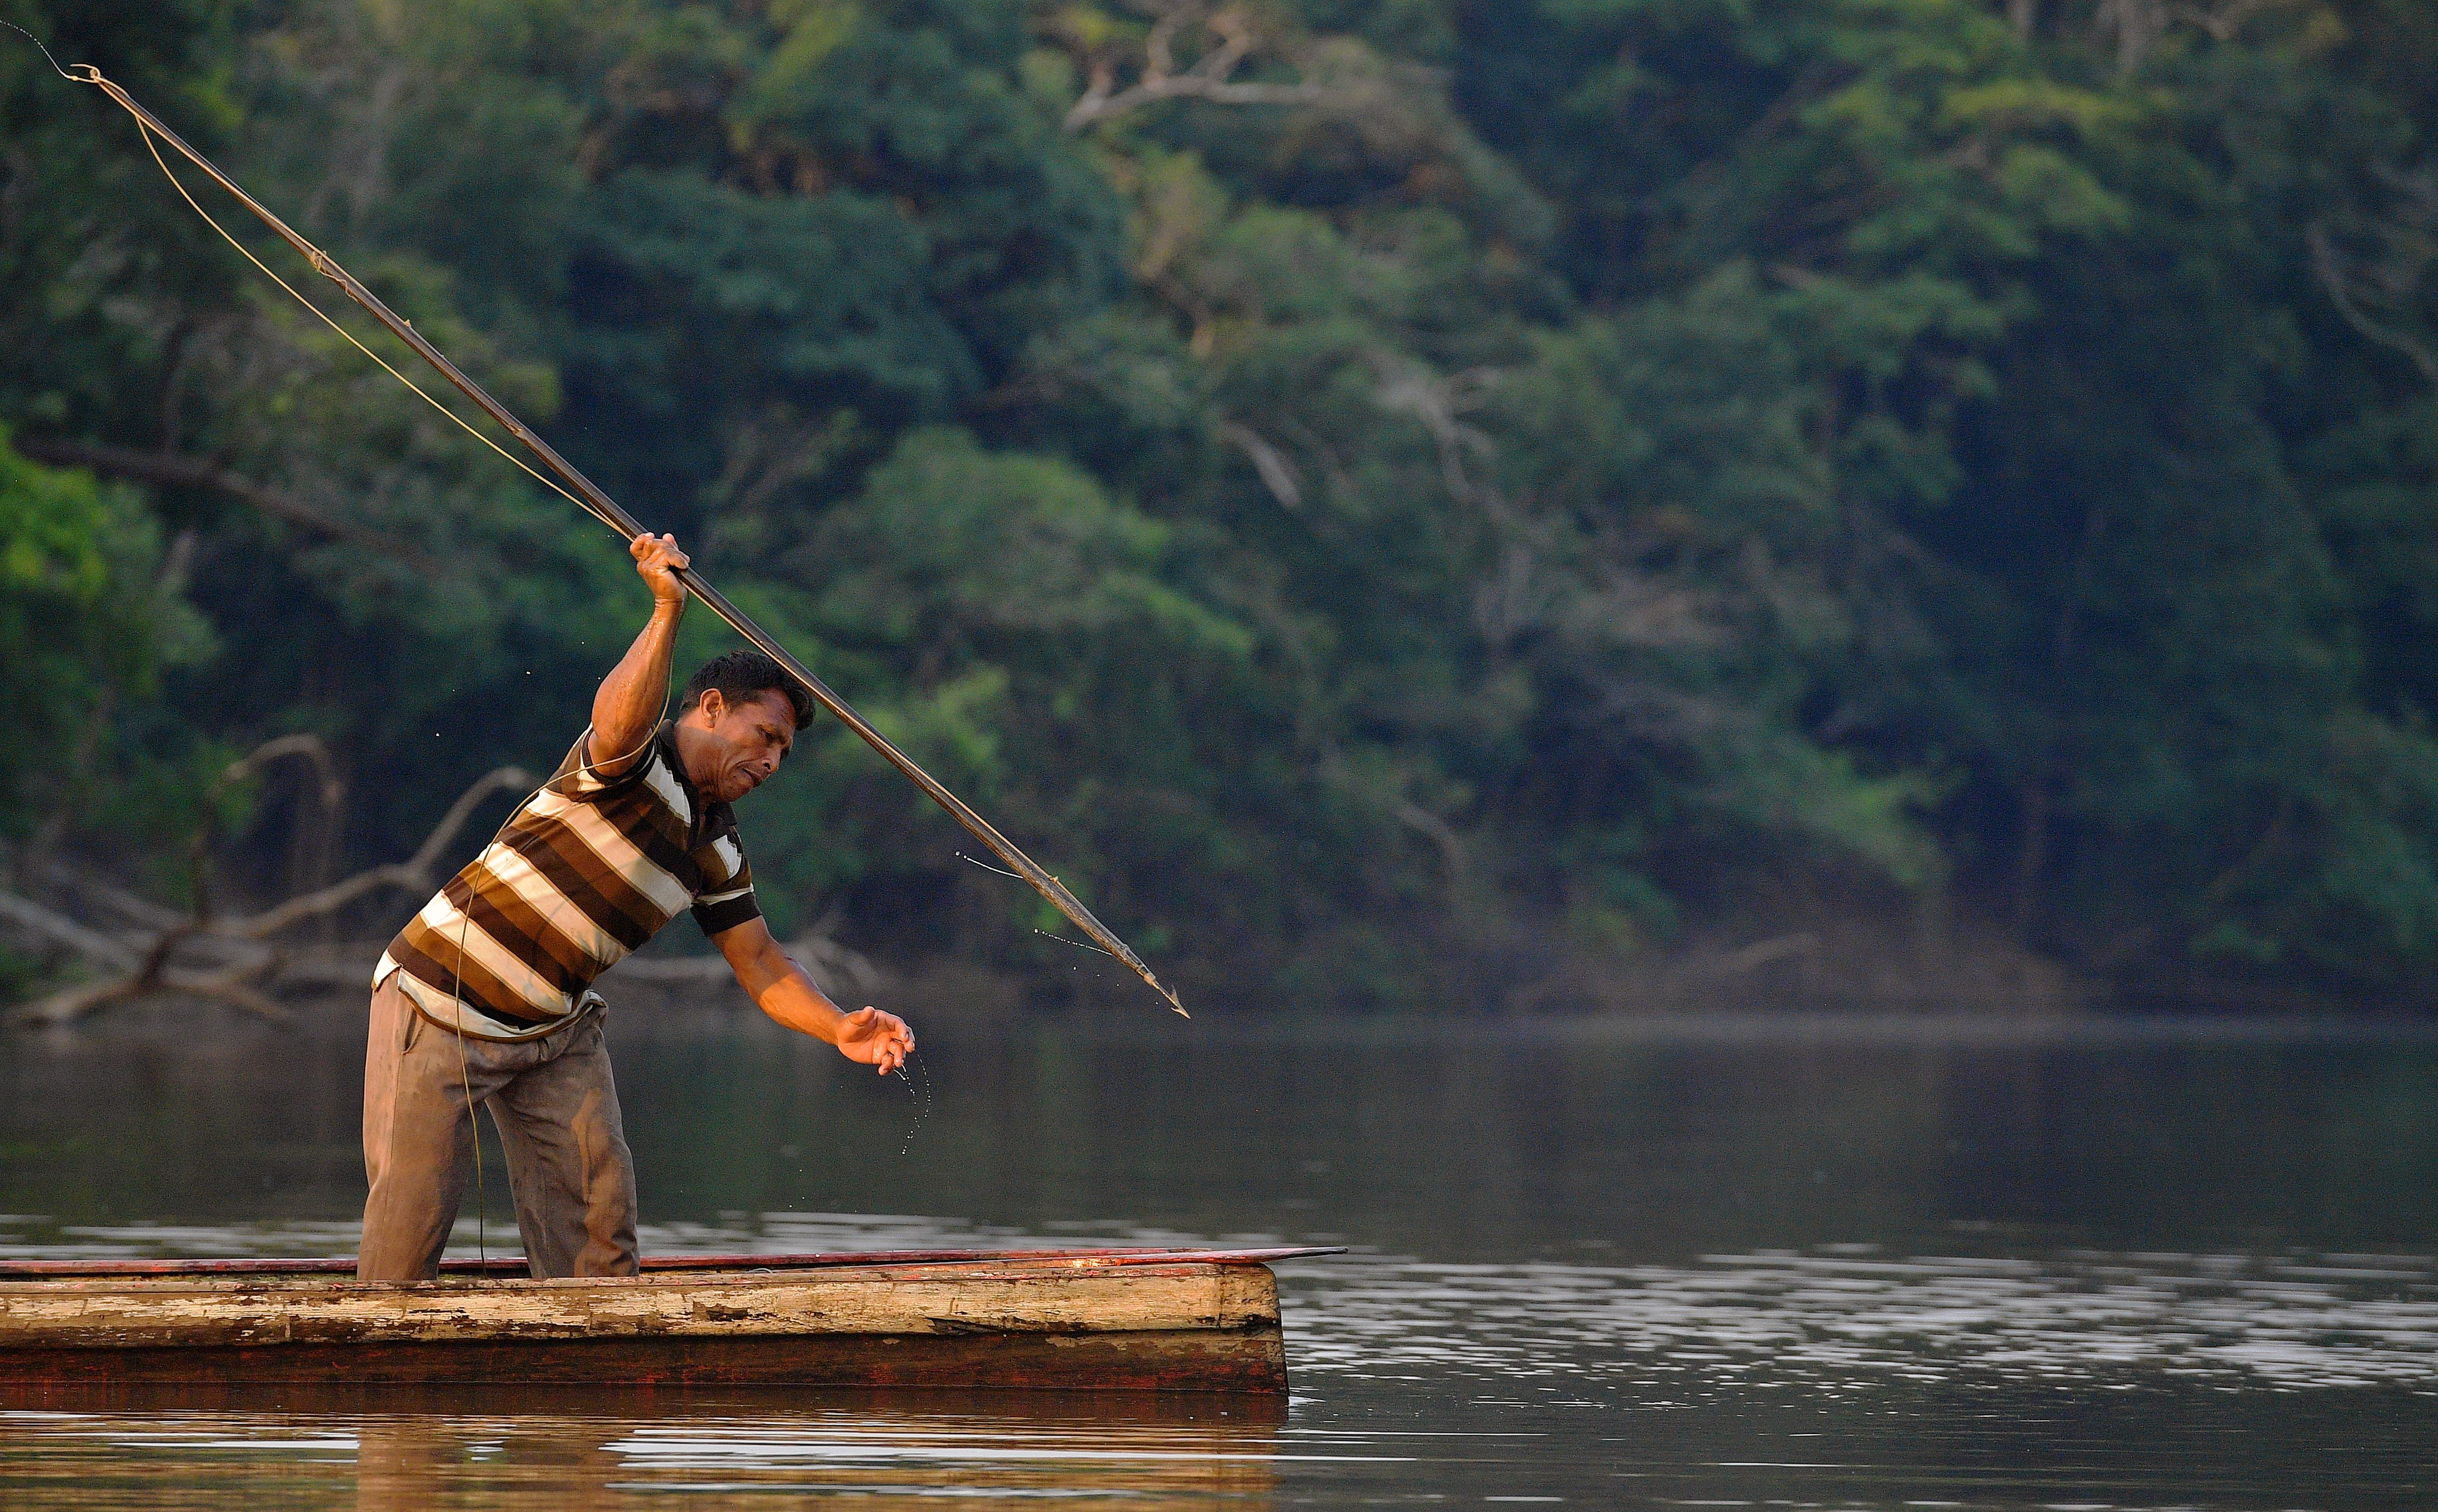 BRAZIL-AMAZON-FISHING